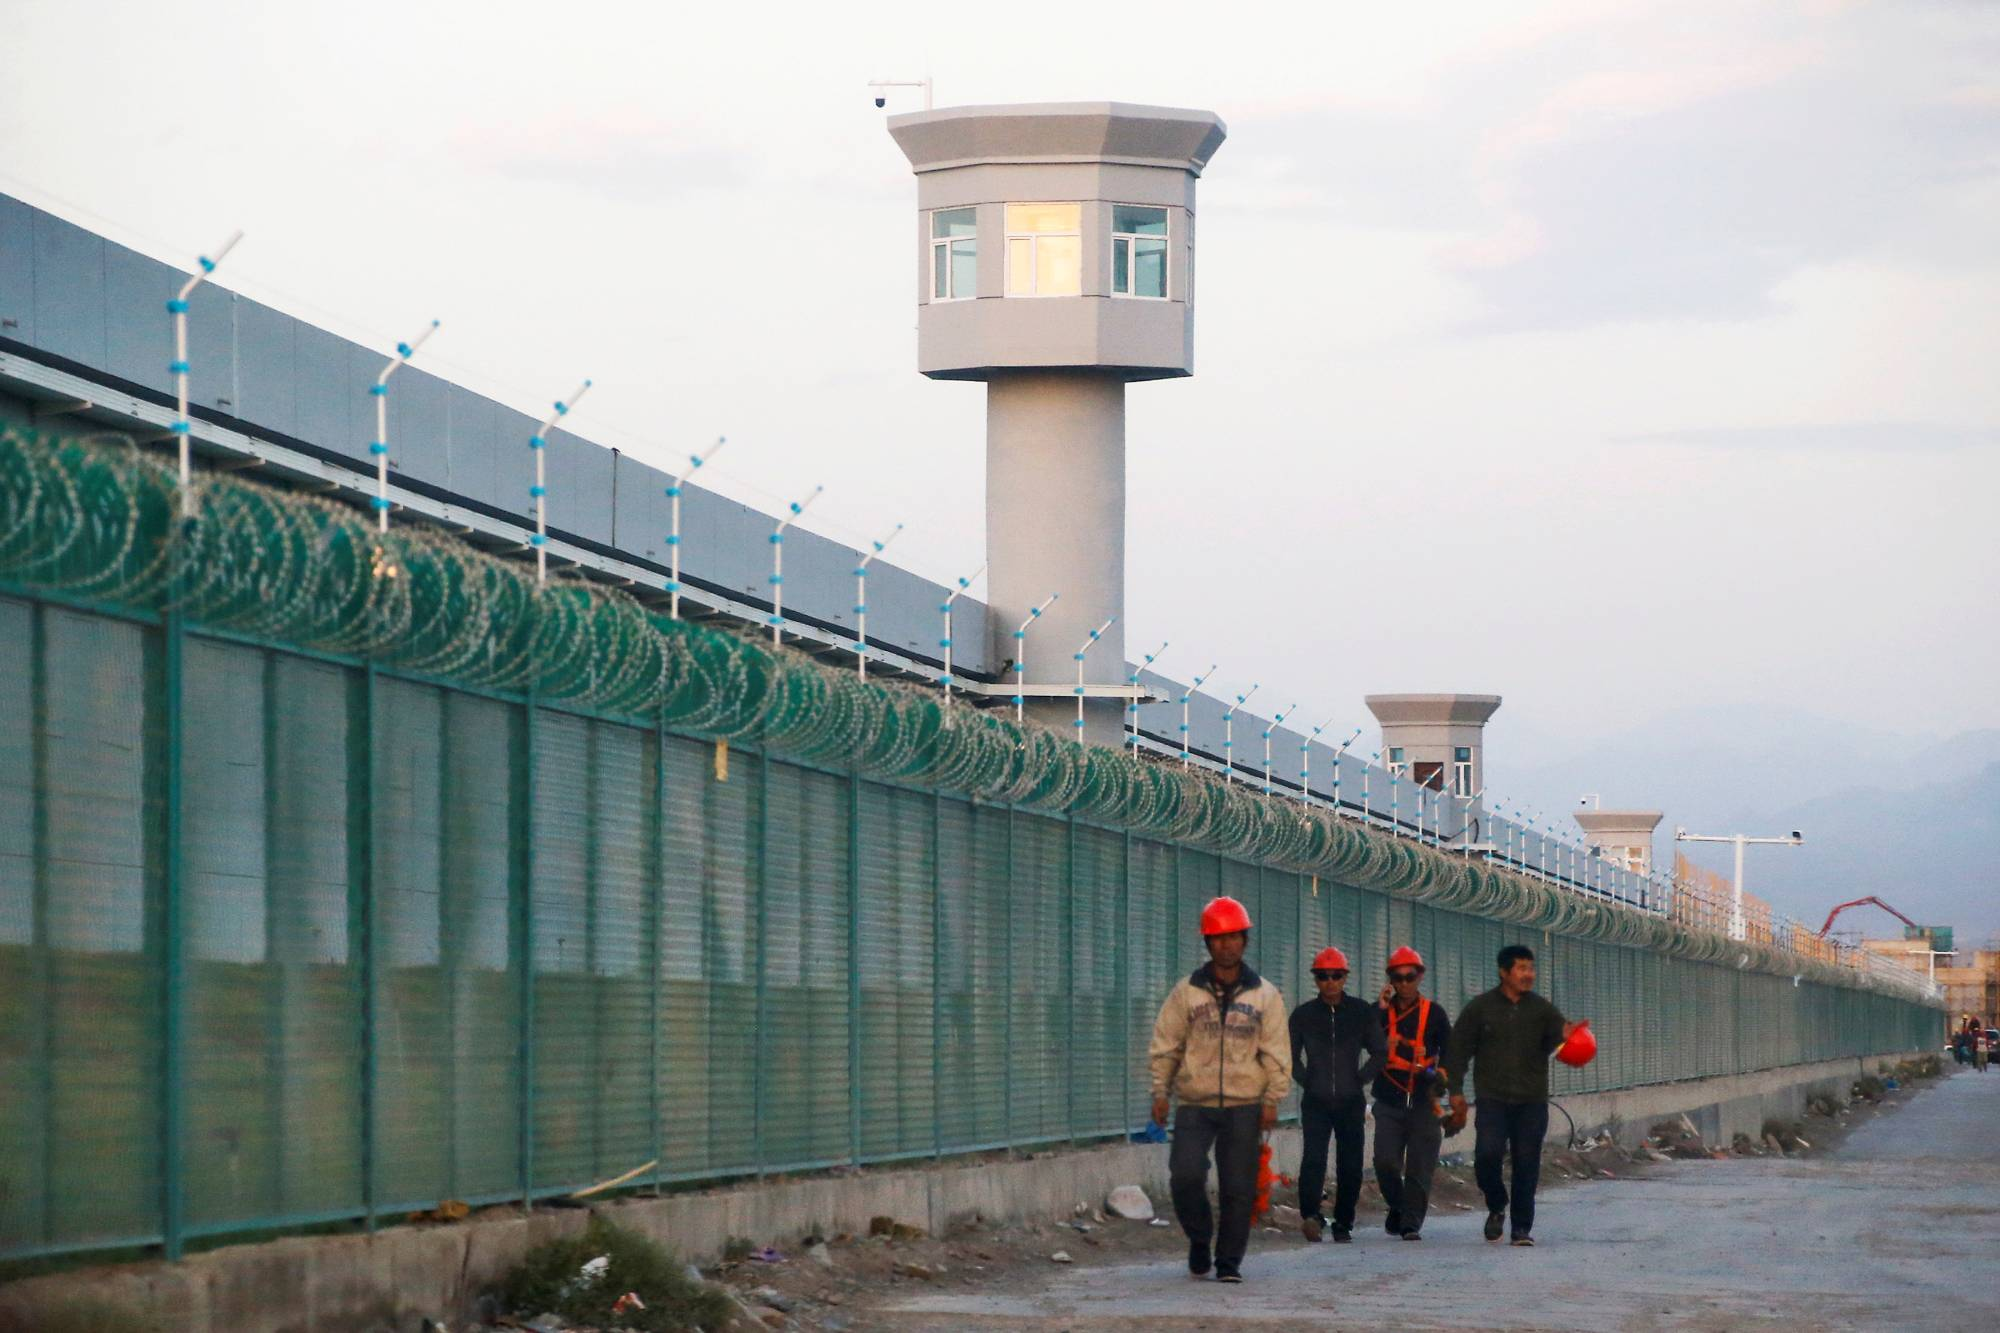 Workers walk by the perimeter fence of what is officially known as a vocational skills education center in Dabancheng, in China's Xinjiang region, in September 2018. | REUTERS